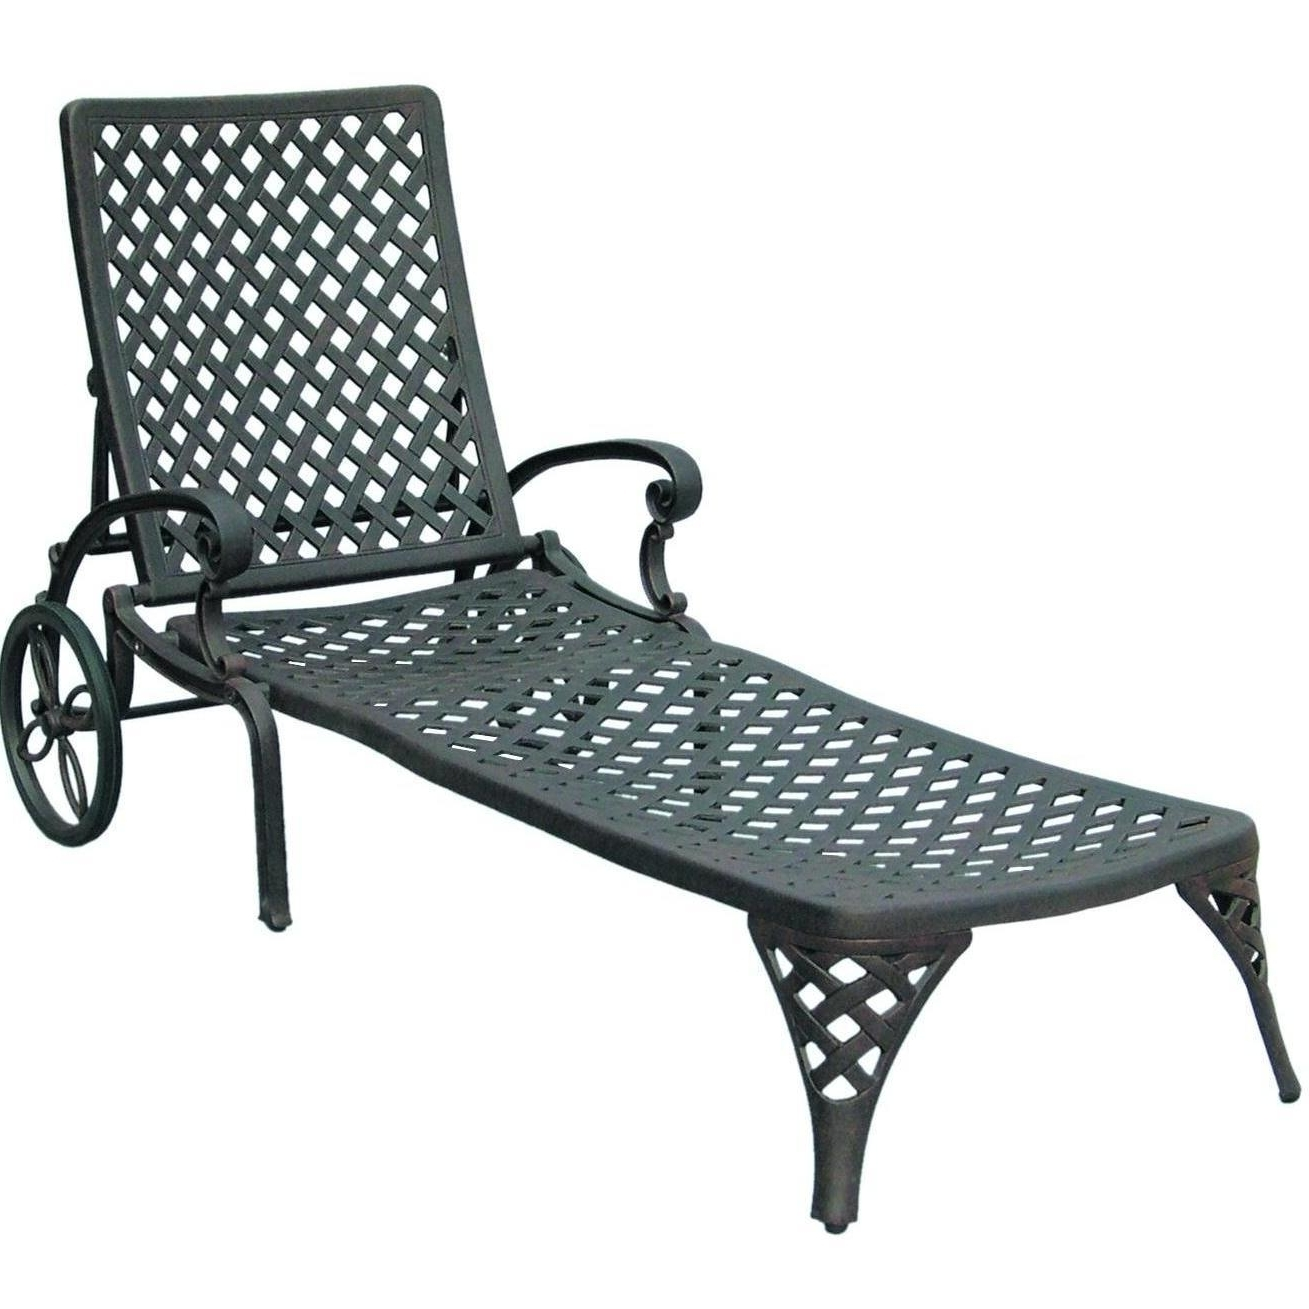 Most Up To Date Cast Aluminum Chaise Lounges Intended For Darlee Nassau Cast Aluminum Patio Chaise Lounge : Ultimate Patio (View 1 of 15)